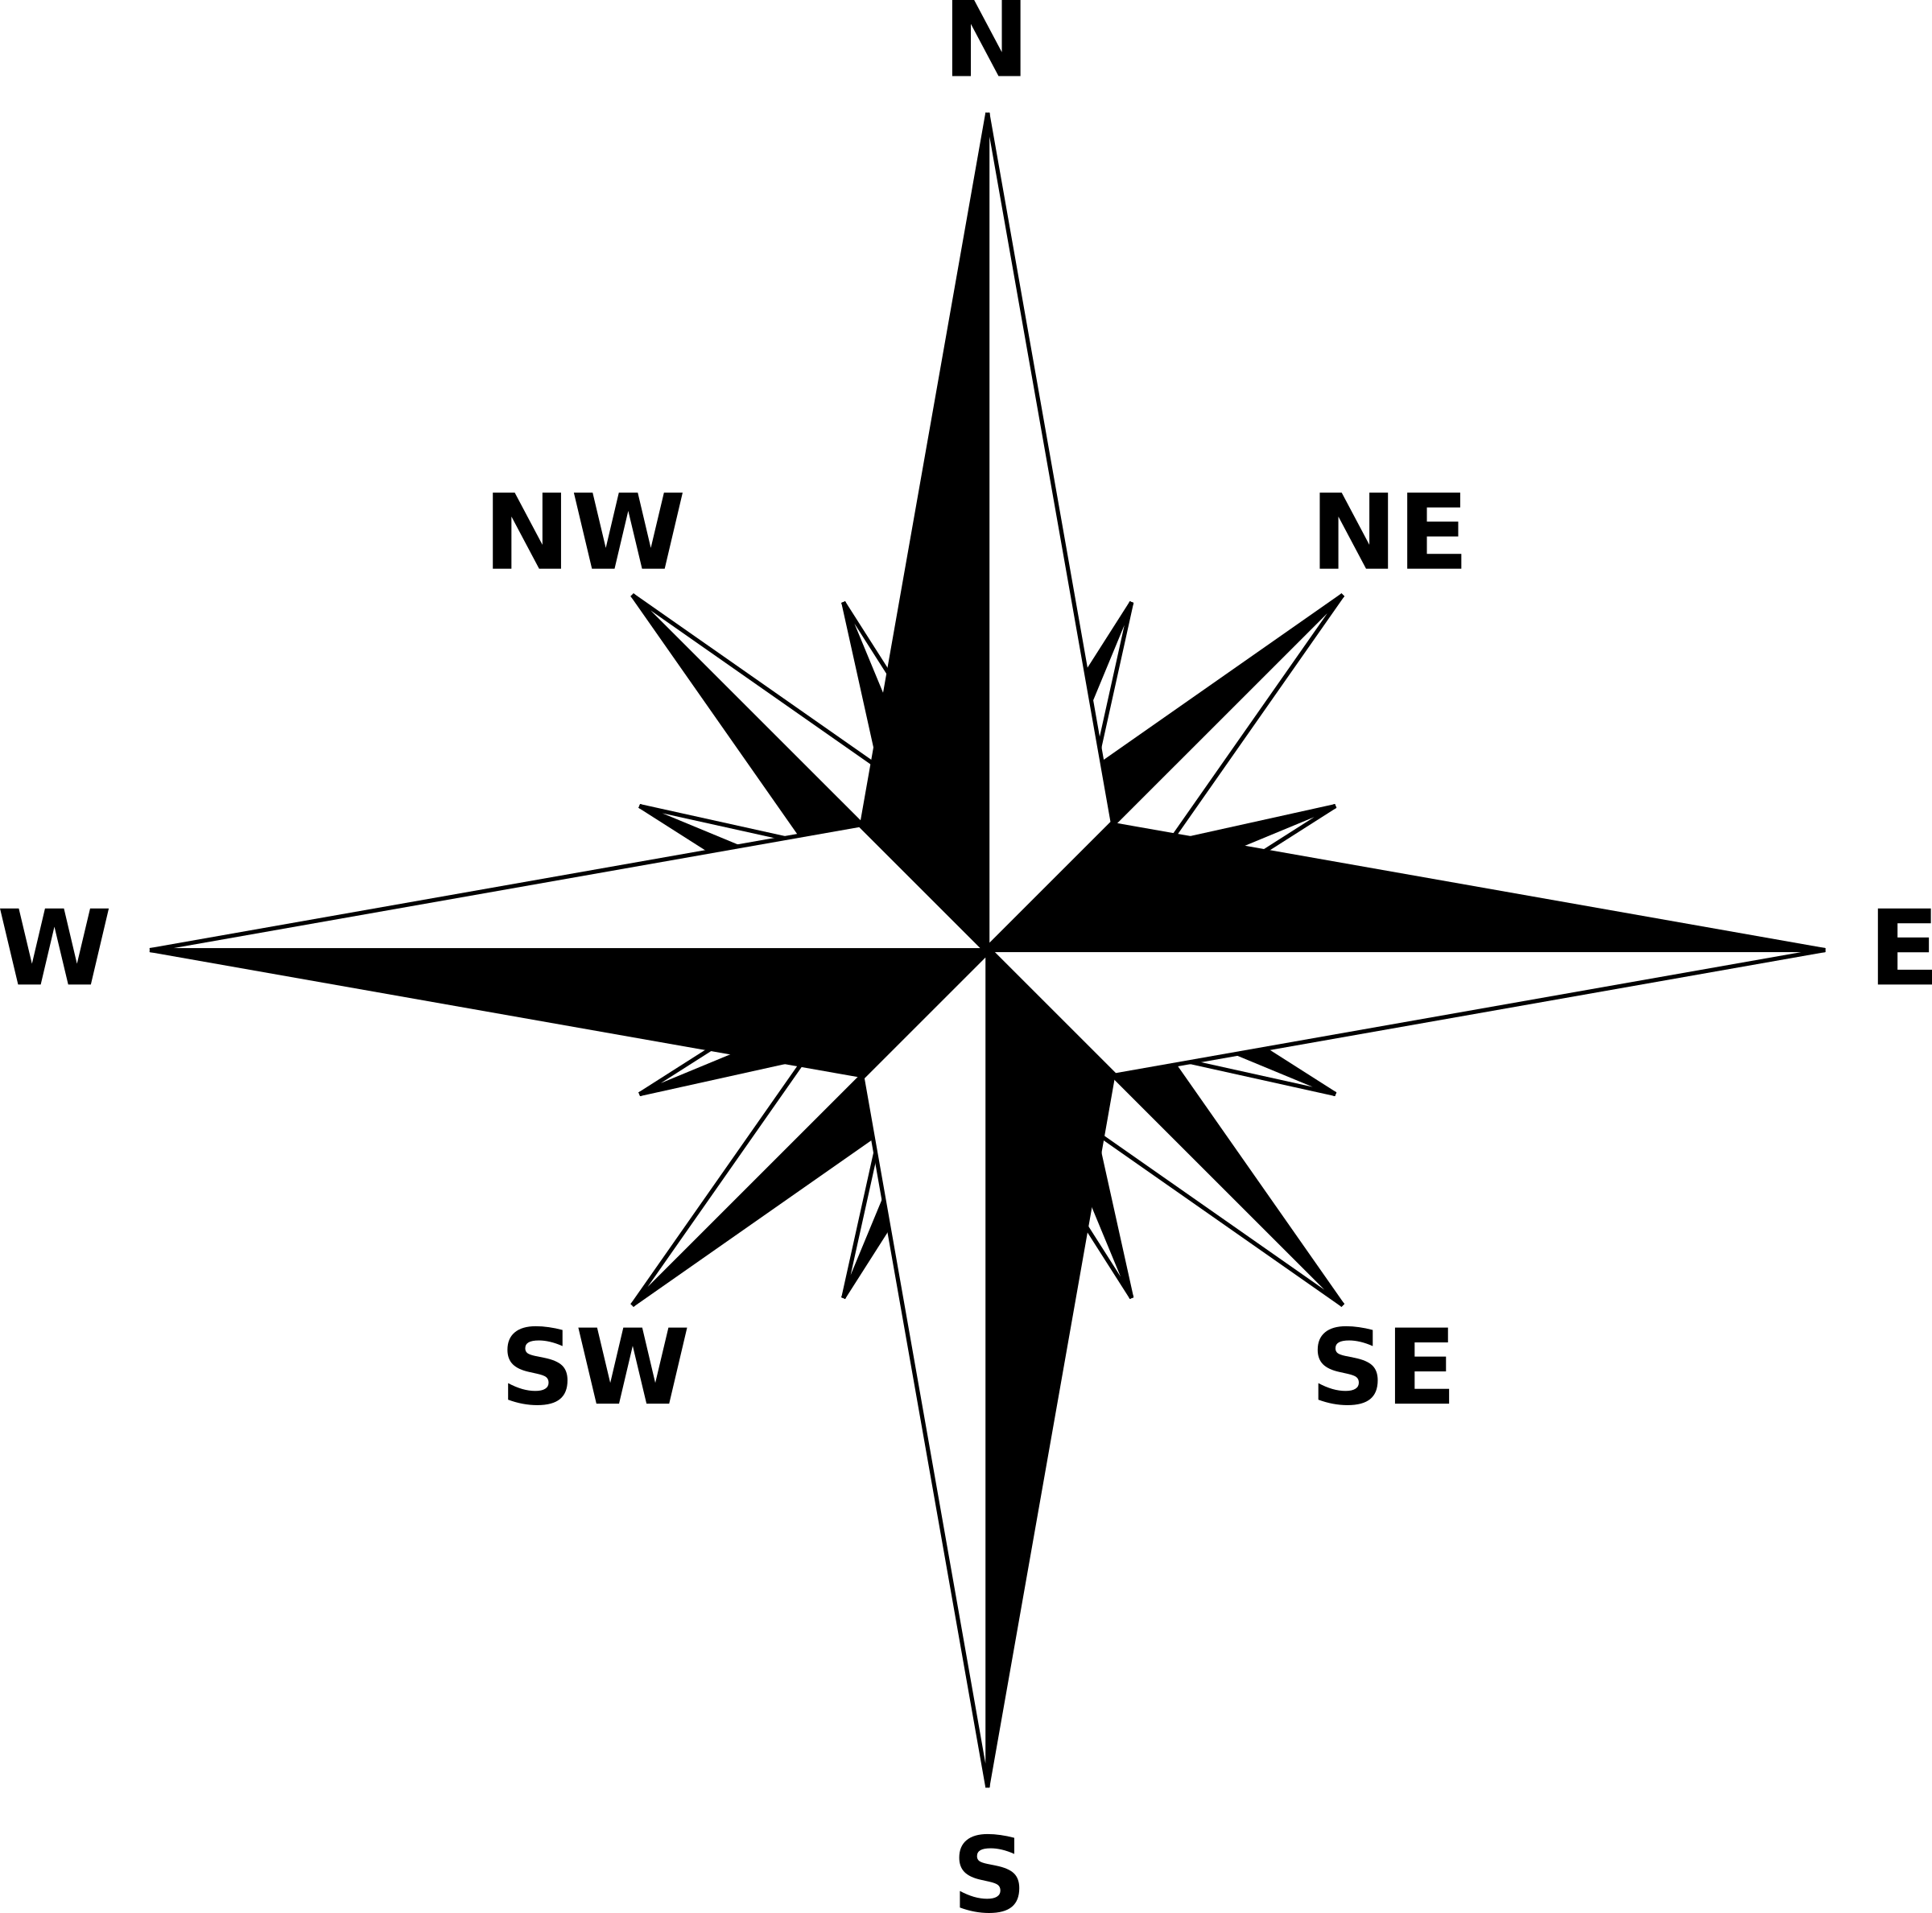 Compass Rose 2 By Firkin A Simple Compass Rose On